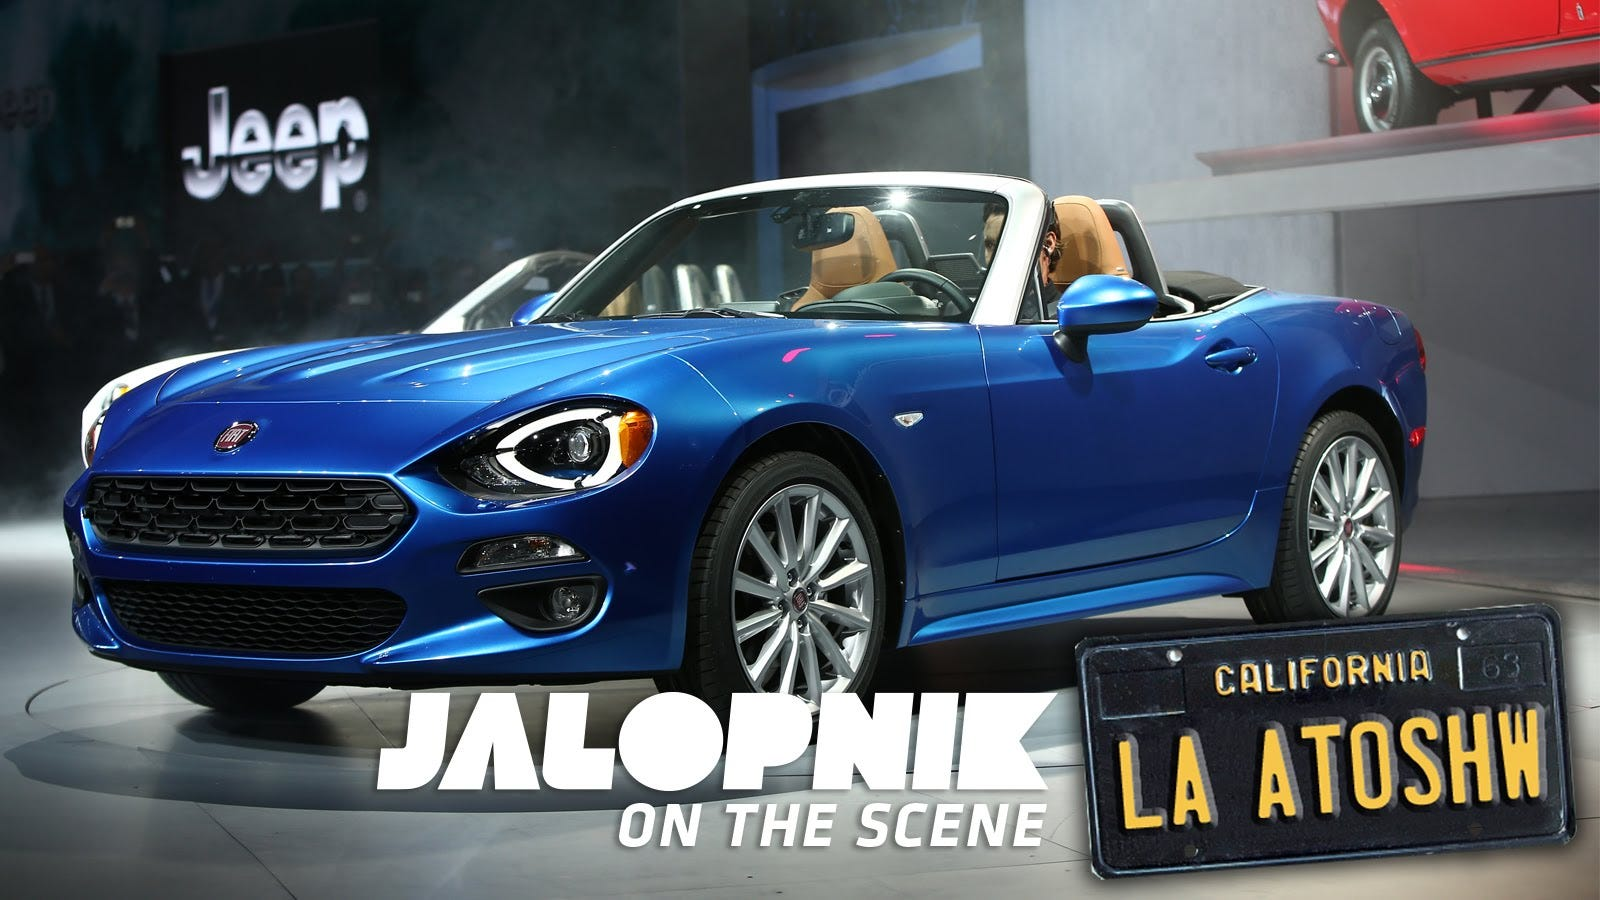 fiat 124 jalopnik with Is The New 2017 Fiat 124 Spider Better Than A Vintage O 1743354235 on 1999 Mazda Miata Anniversary Edition Reviews together with 2016 Fiat 124 Spider Release Date 2017 2018 Car Reviews together with For 9 990 Could This 1981 Fiat 124 Sport Spider Make 1823154323 as well Bmw Serie5 F10 Le Configurateur Et Une Version Hybride Presentee En Mars 2010 43032 as well 2016 Fiat 124 Spider Revealed Spotted During Photo Shoot 2921.